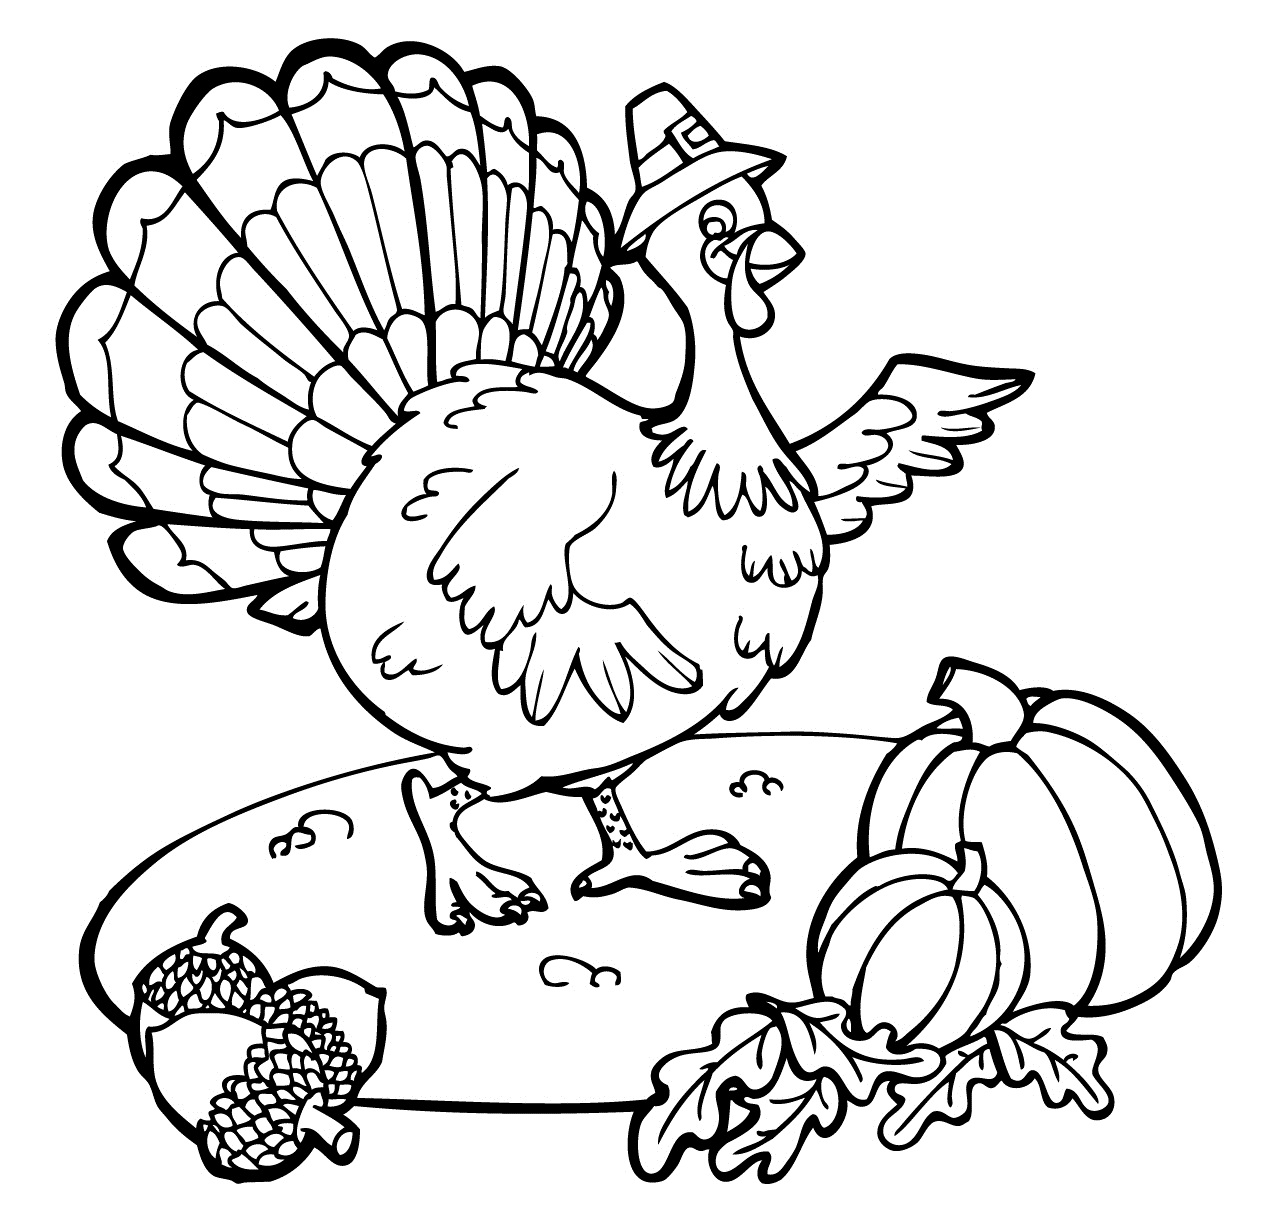 photograph regarding Thanksgiving Printable Coloring Pages called No cost Printable Thanksgiving Turkey Coloring Webpages at